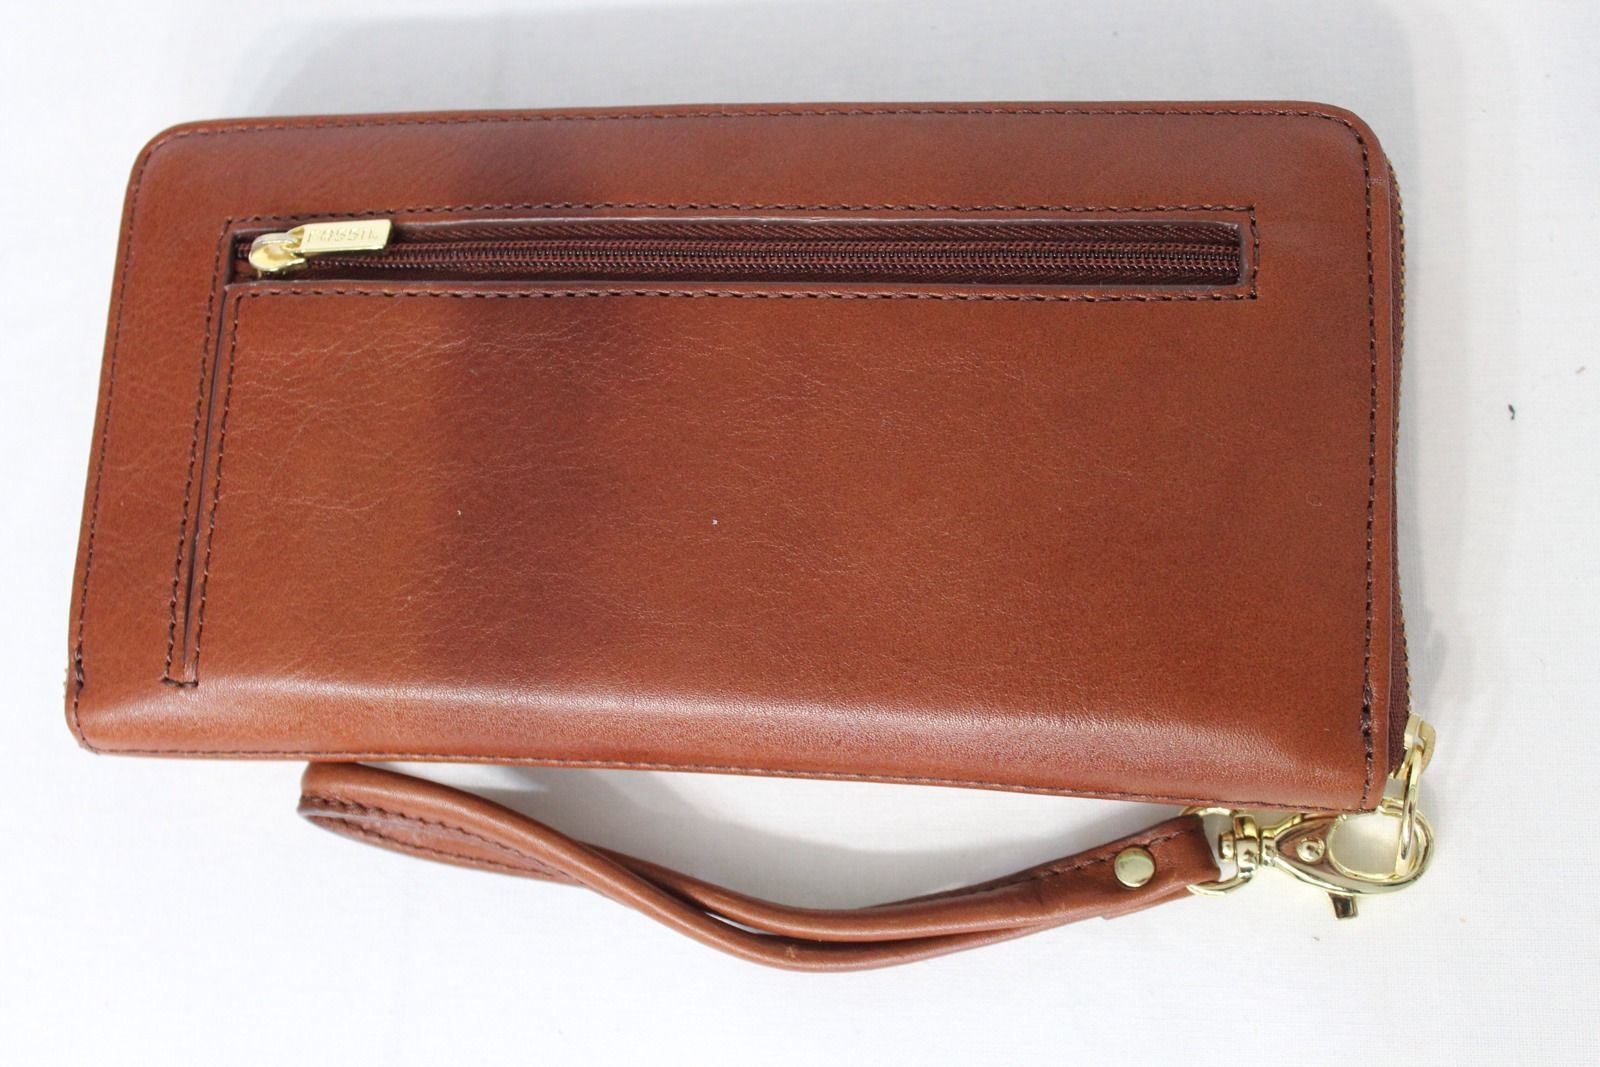 NWT! Fossil Sydney Zip Clutch Natural Multi. Leather Brown Color with Gold Trim